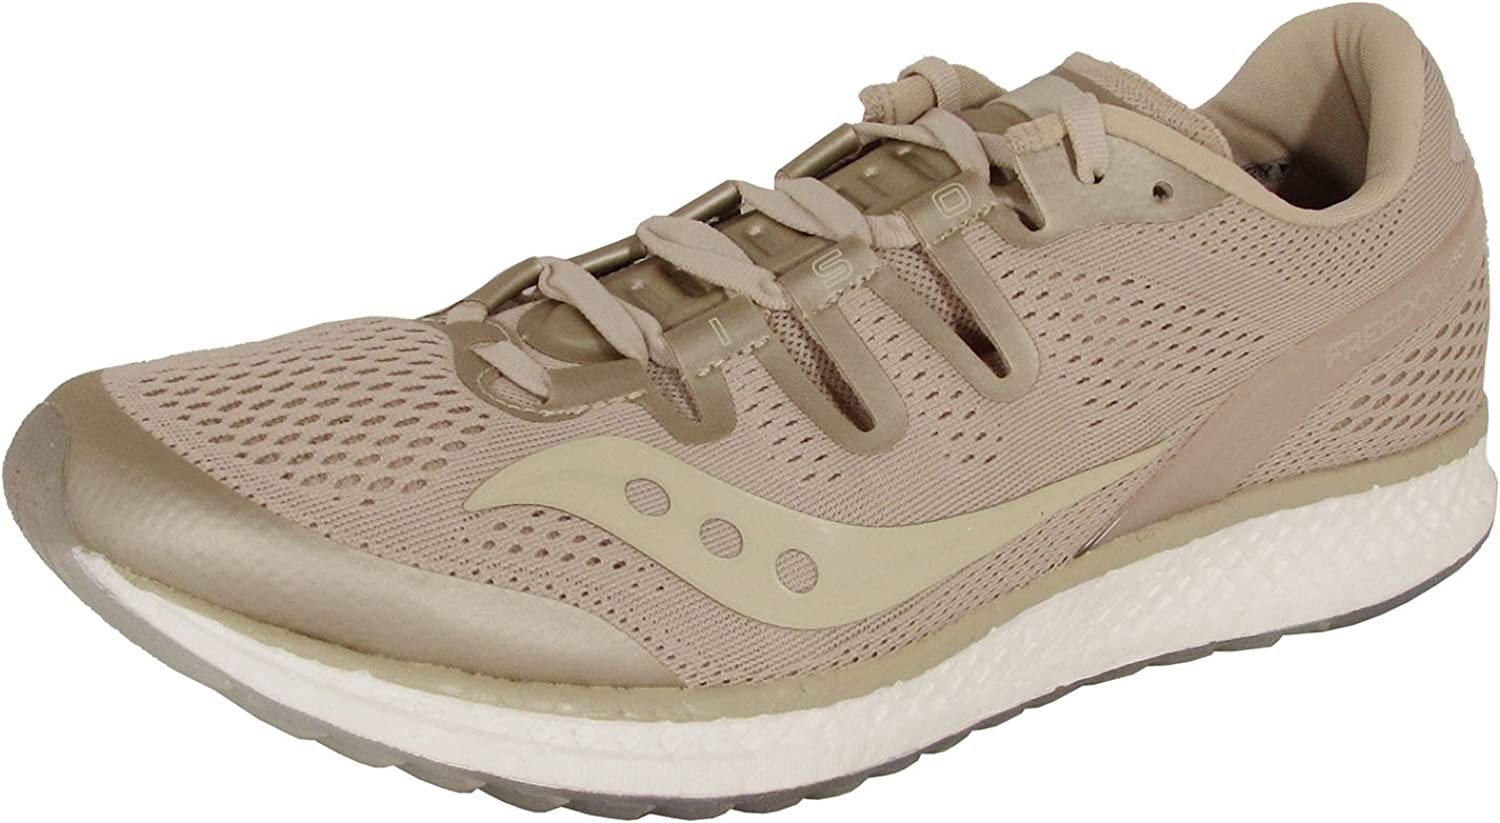 Saucony Freedom ISO Mens Running shoes - Brown-8